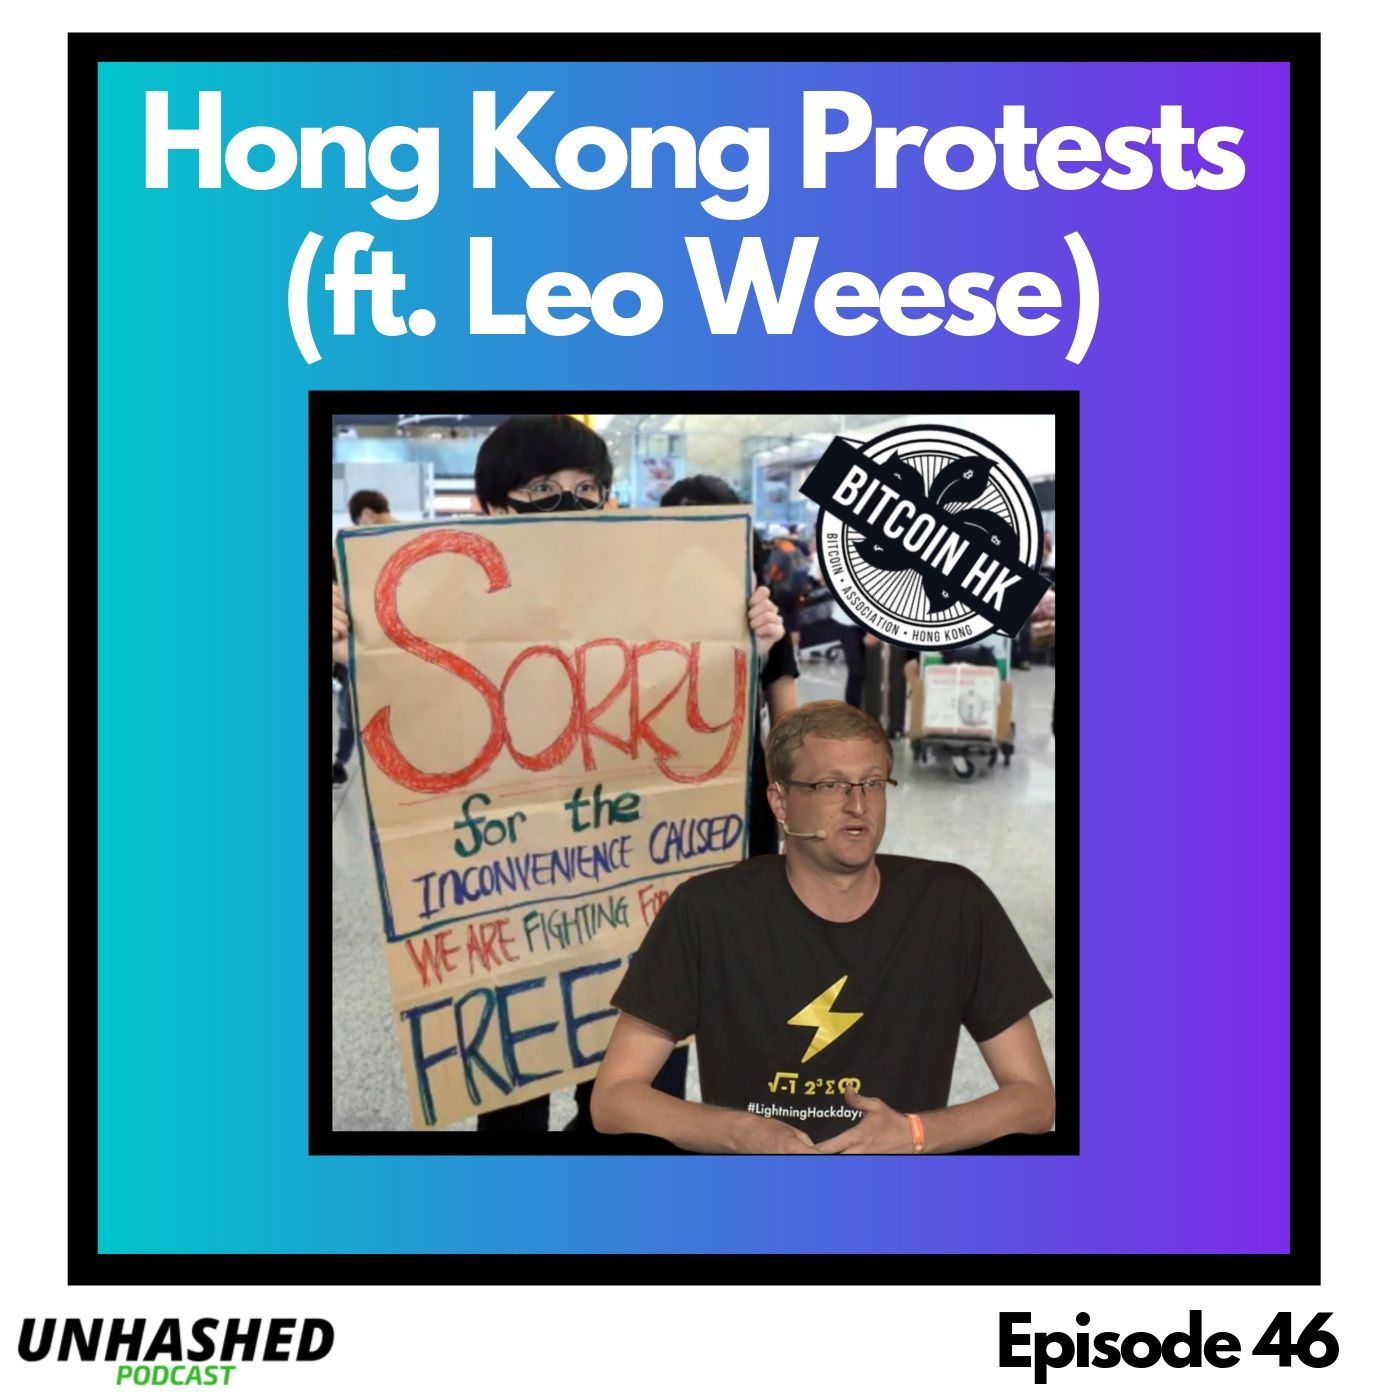 Hong Kong Protests (ft. Leo Weese)